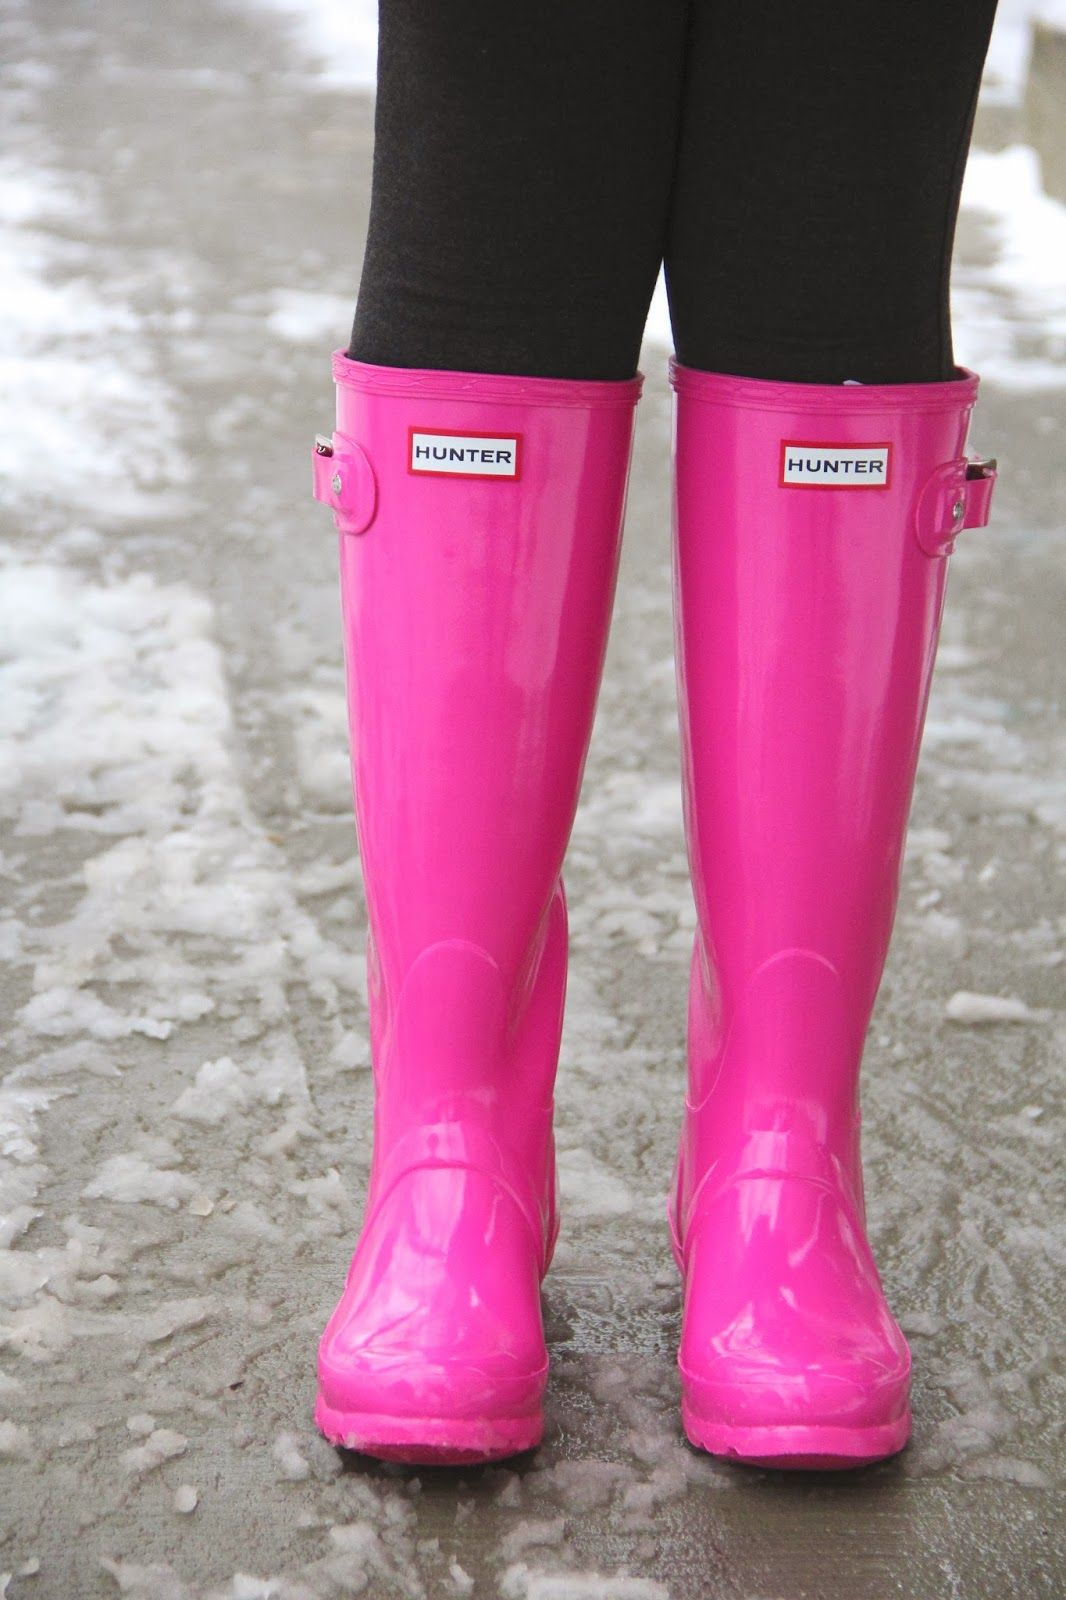 53f44b04572 Rain boots are a must-have item for college since you're walking ...